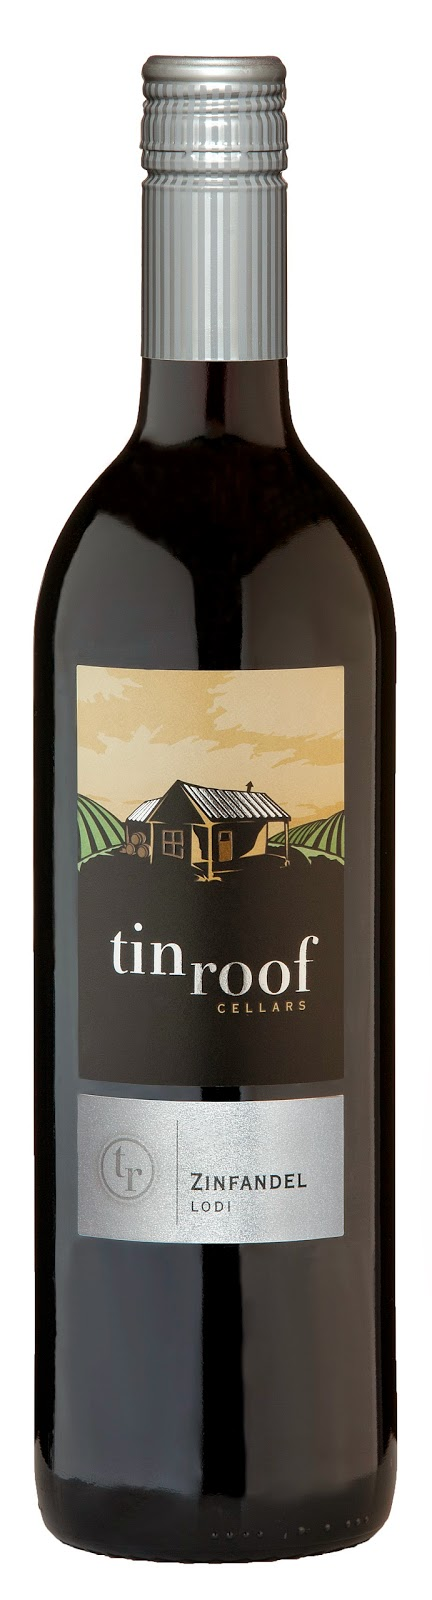 The Winey Mom Winey Tasting Notes Tin Roof Not The